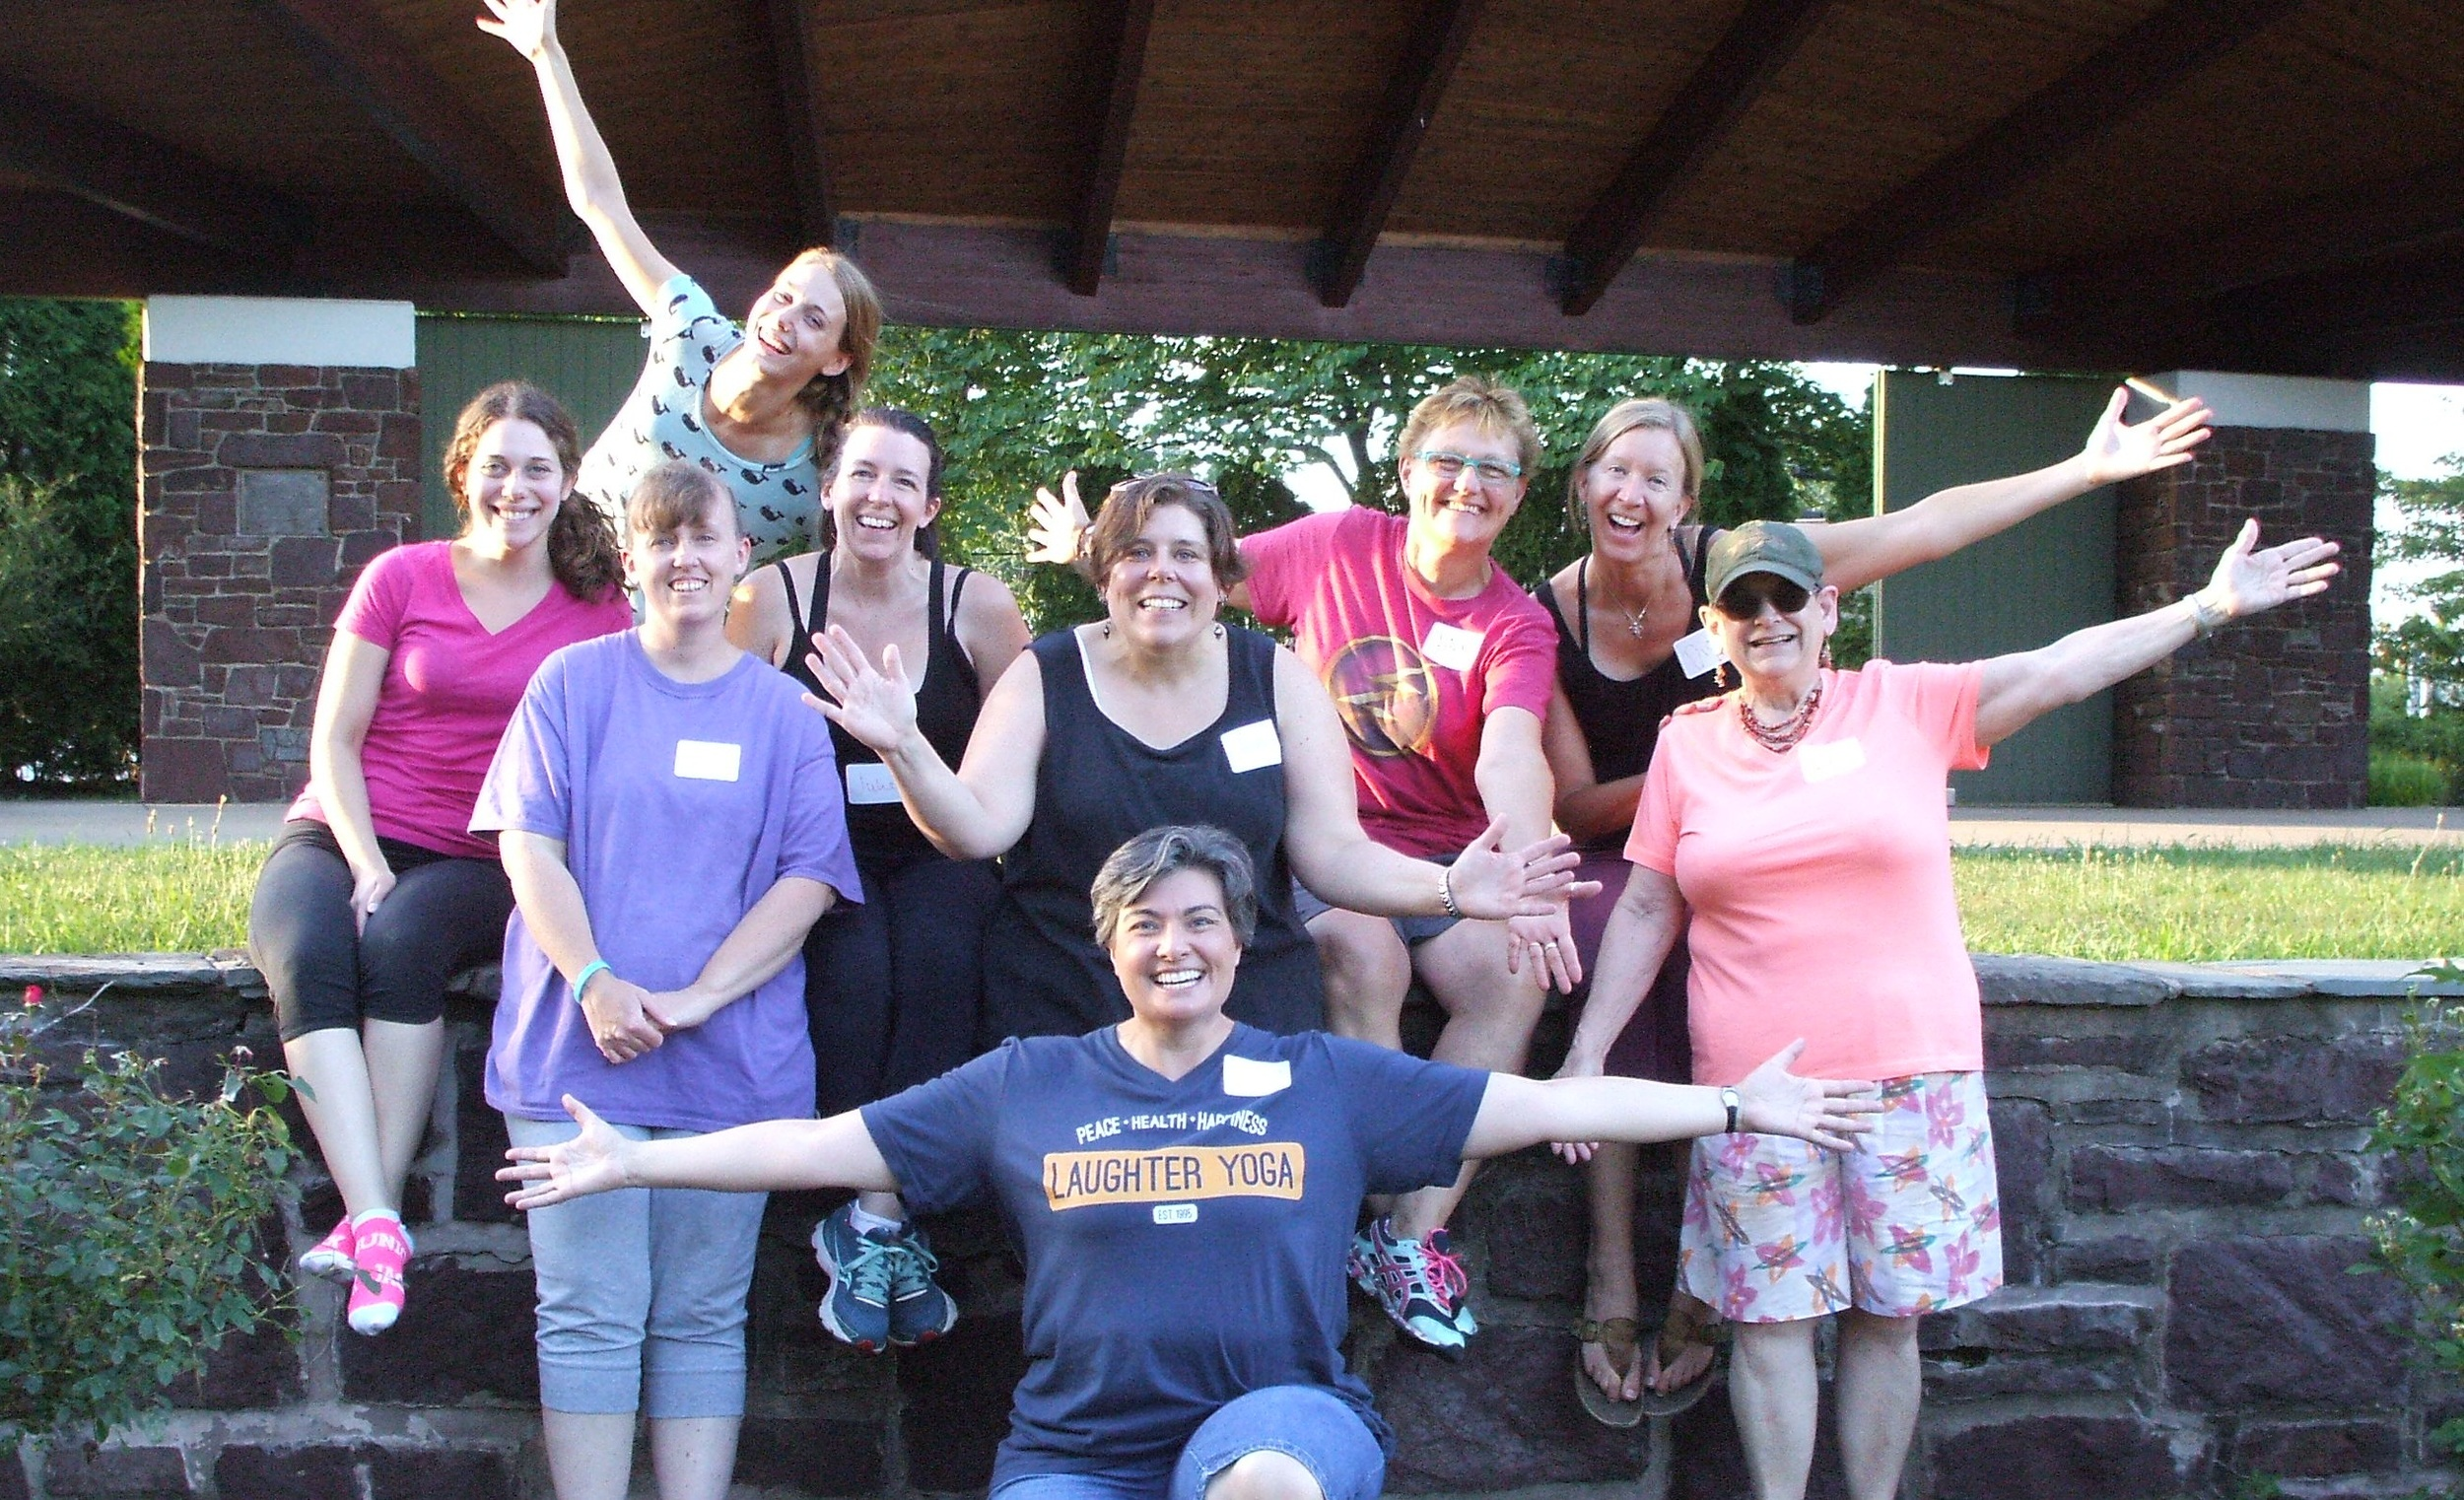 Souderton Laughter Yoga Club at Souderton Community Park in front of the bandshell